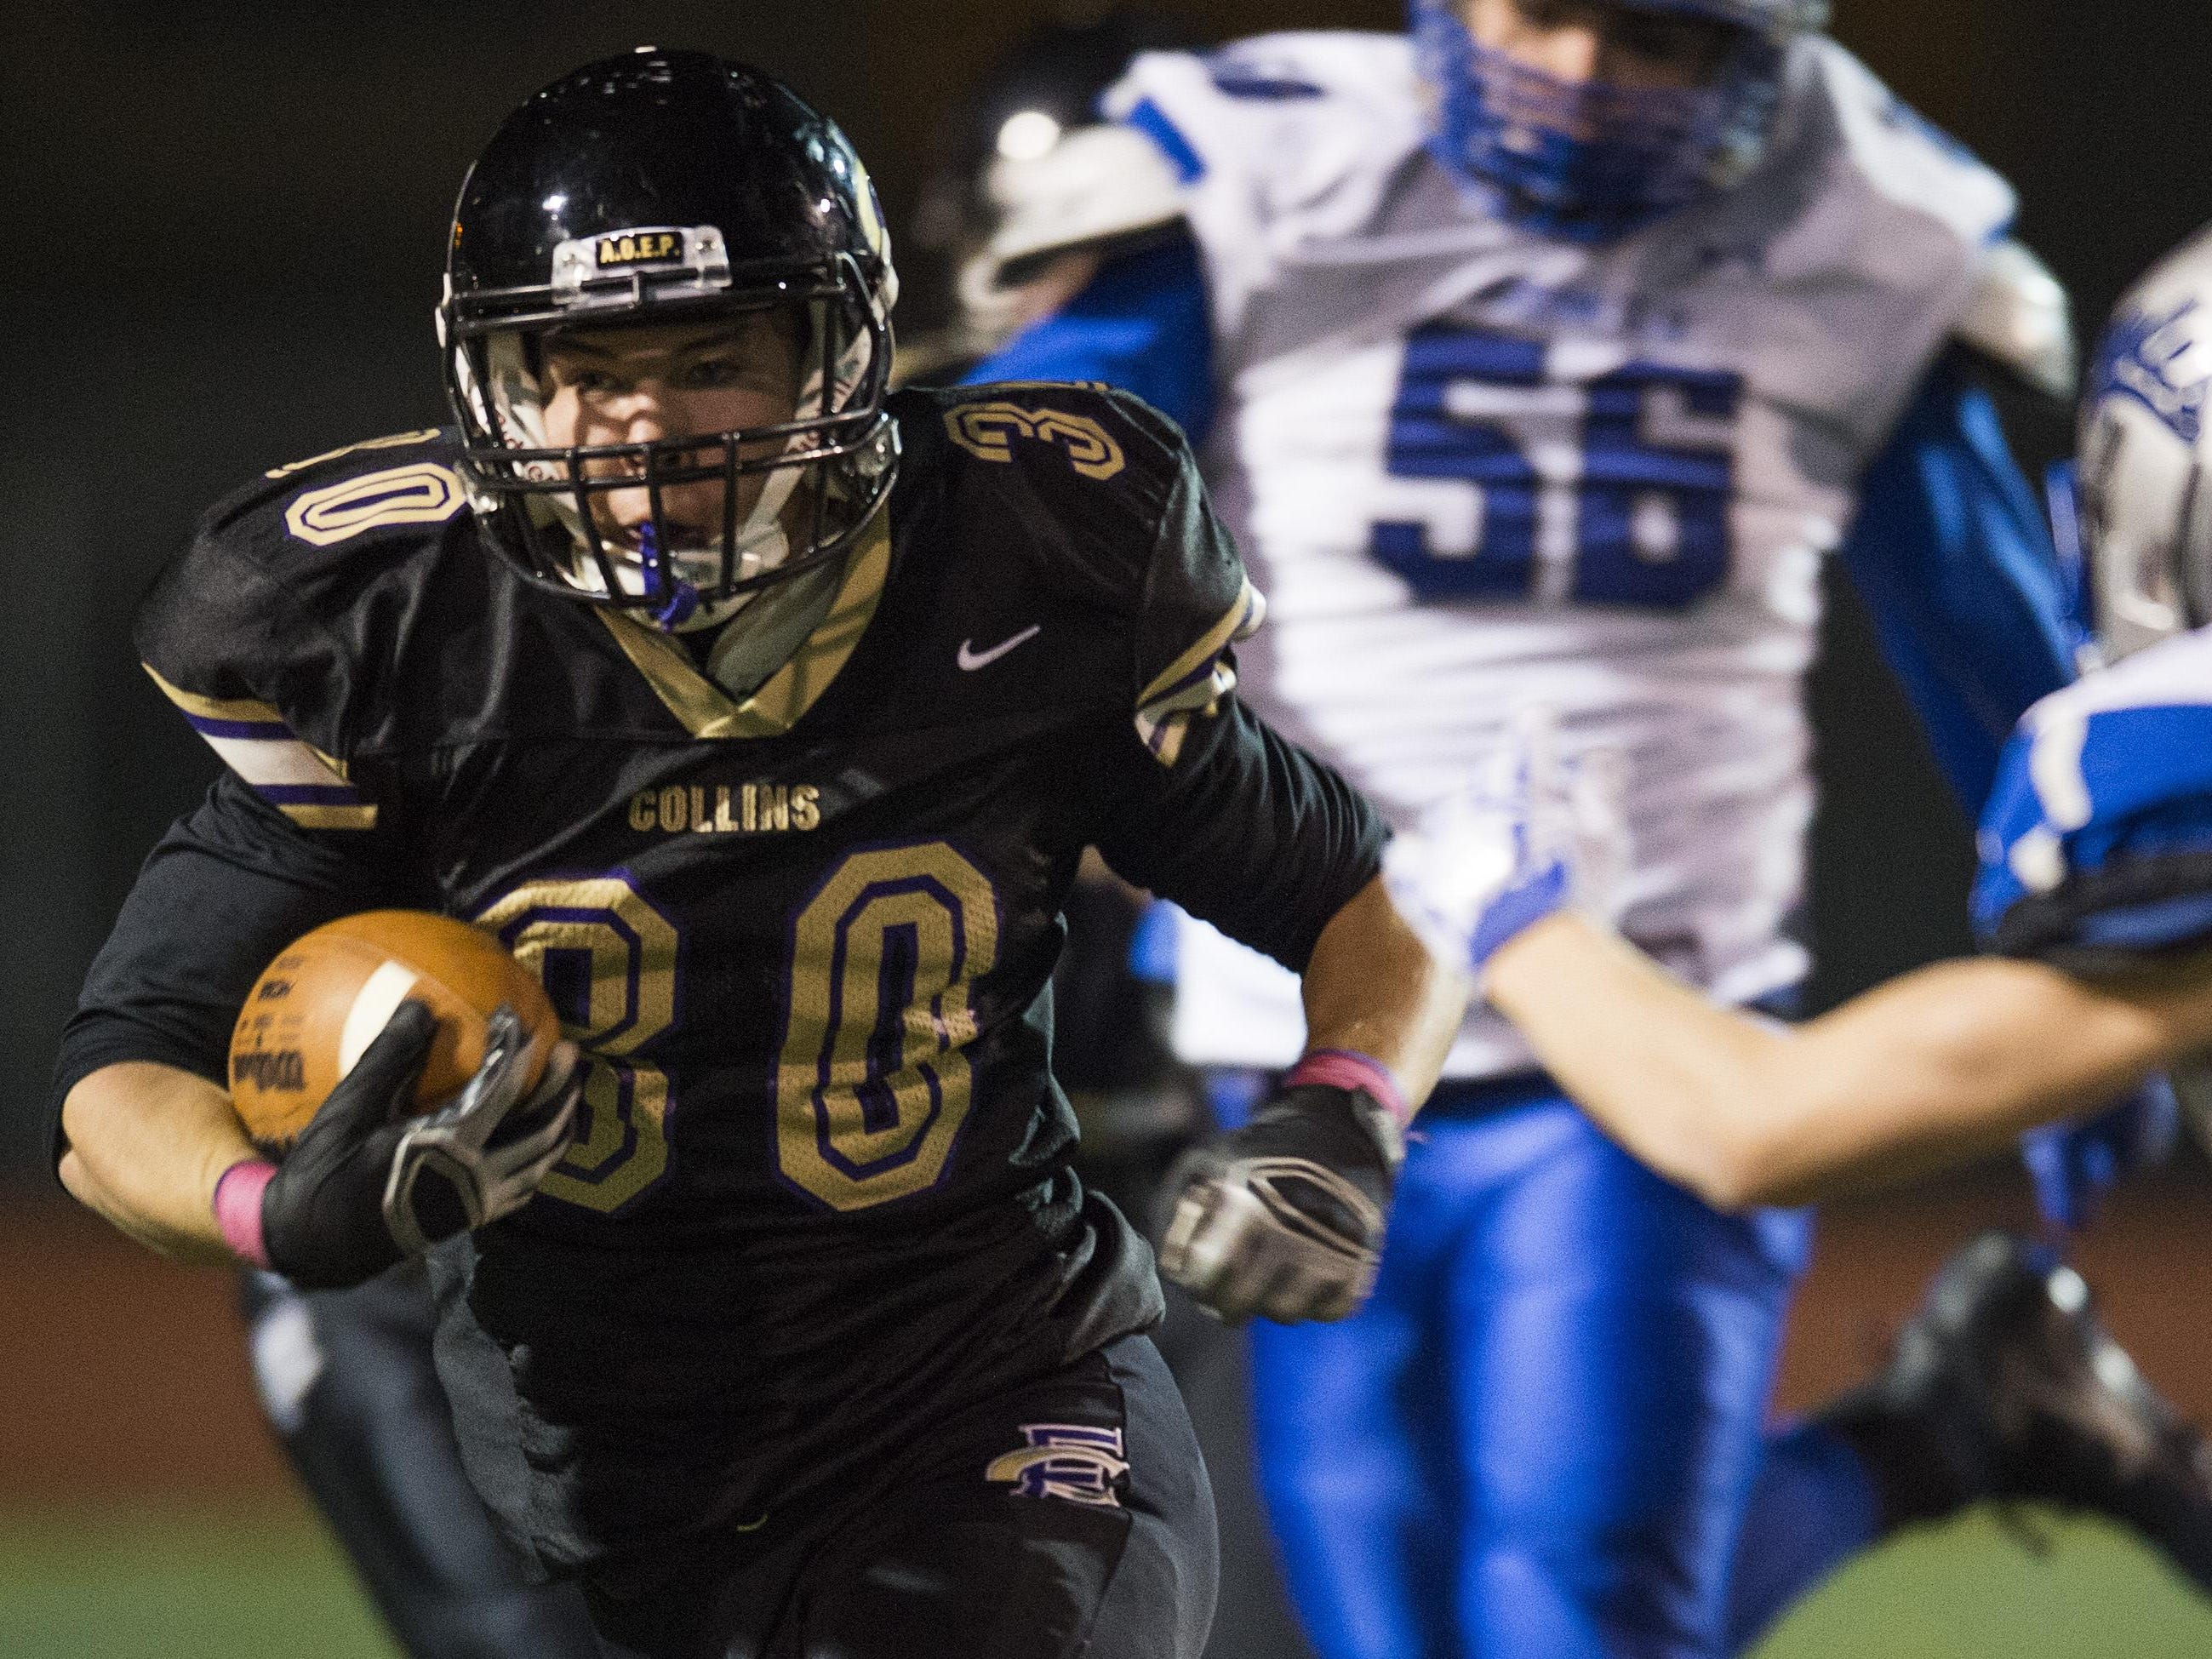 More than 250 yards rushing against Broomfield has moved Fort Collins' Sam Bostak up the leaderboard in rushing stats.